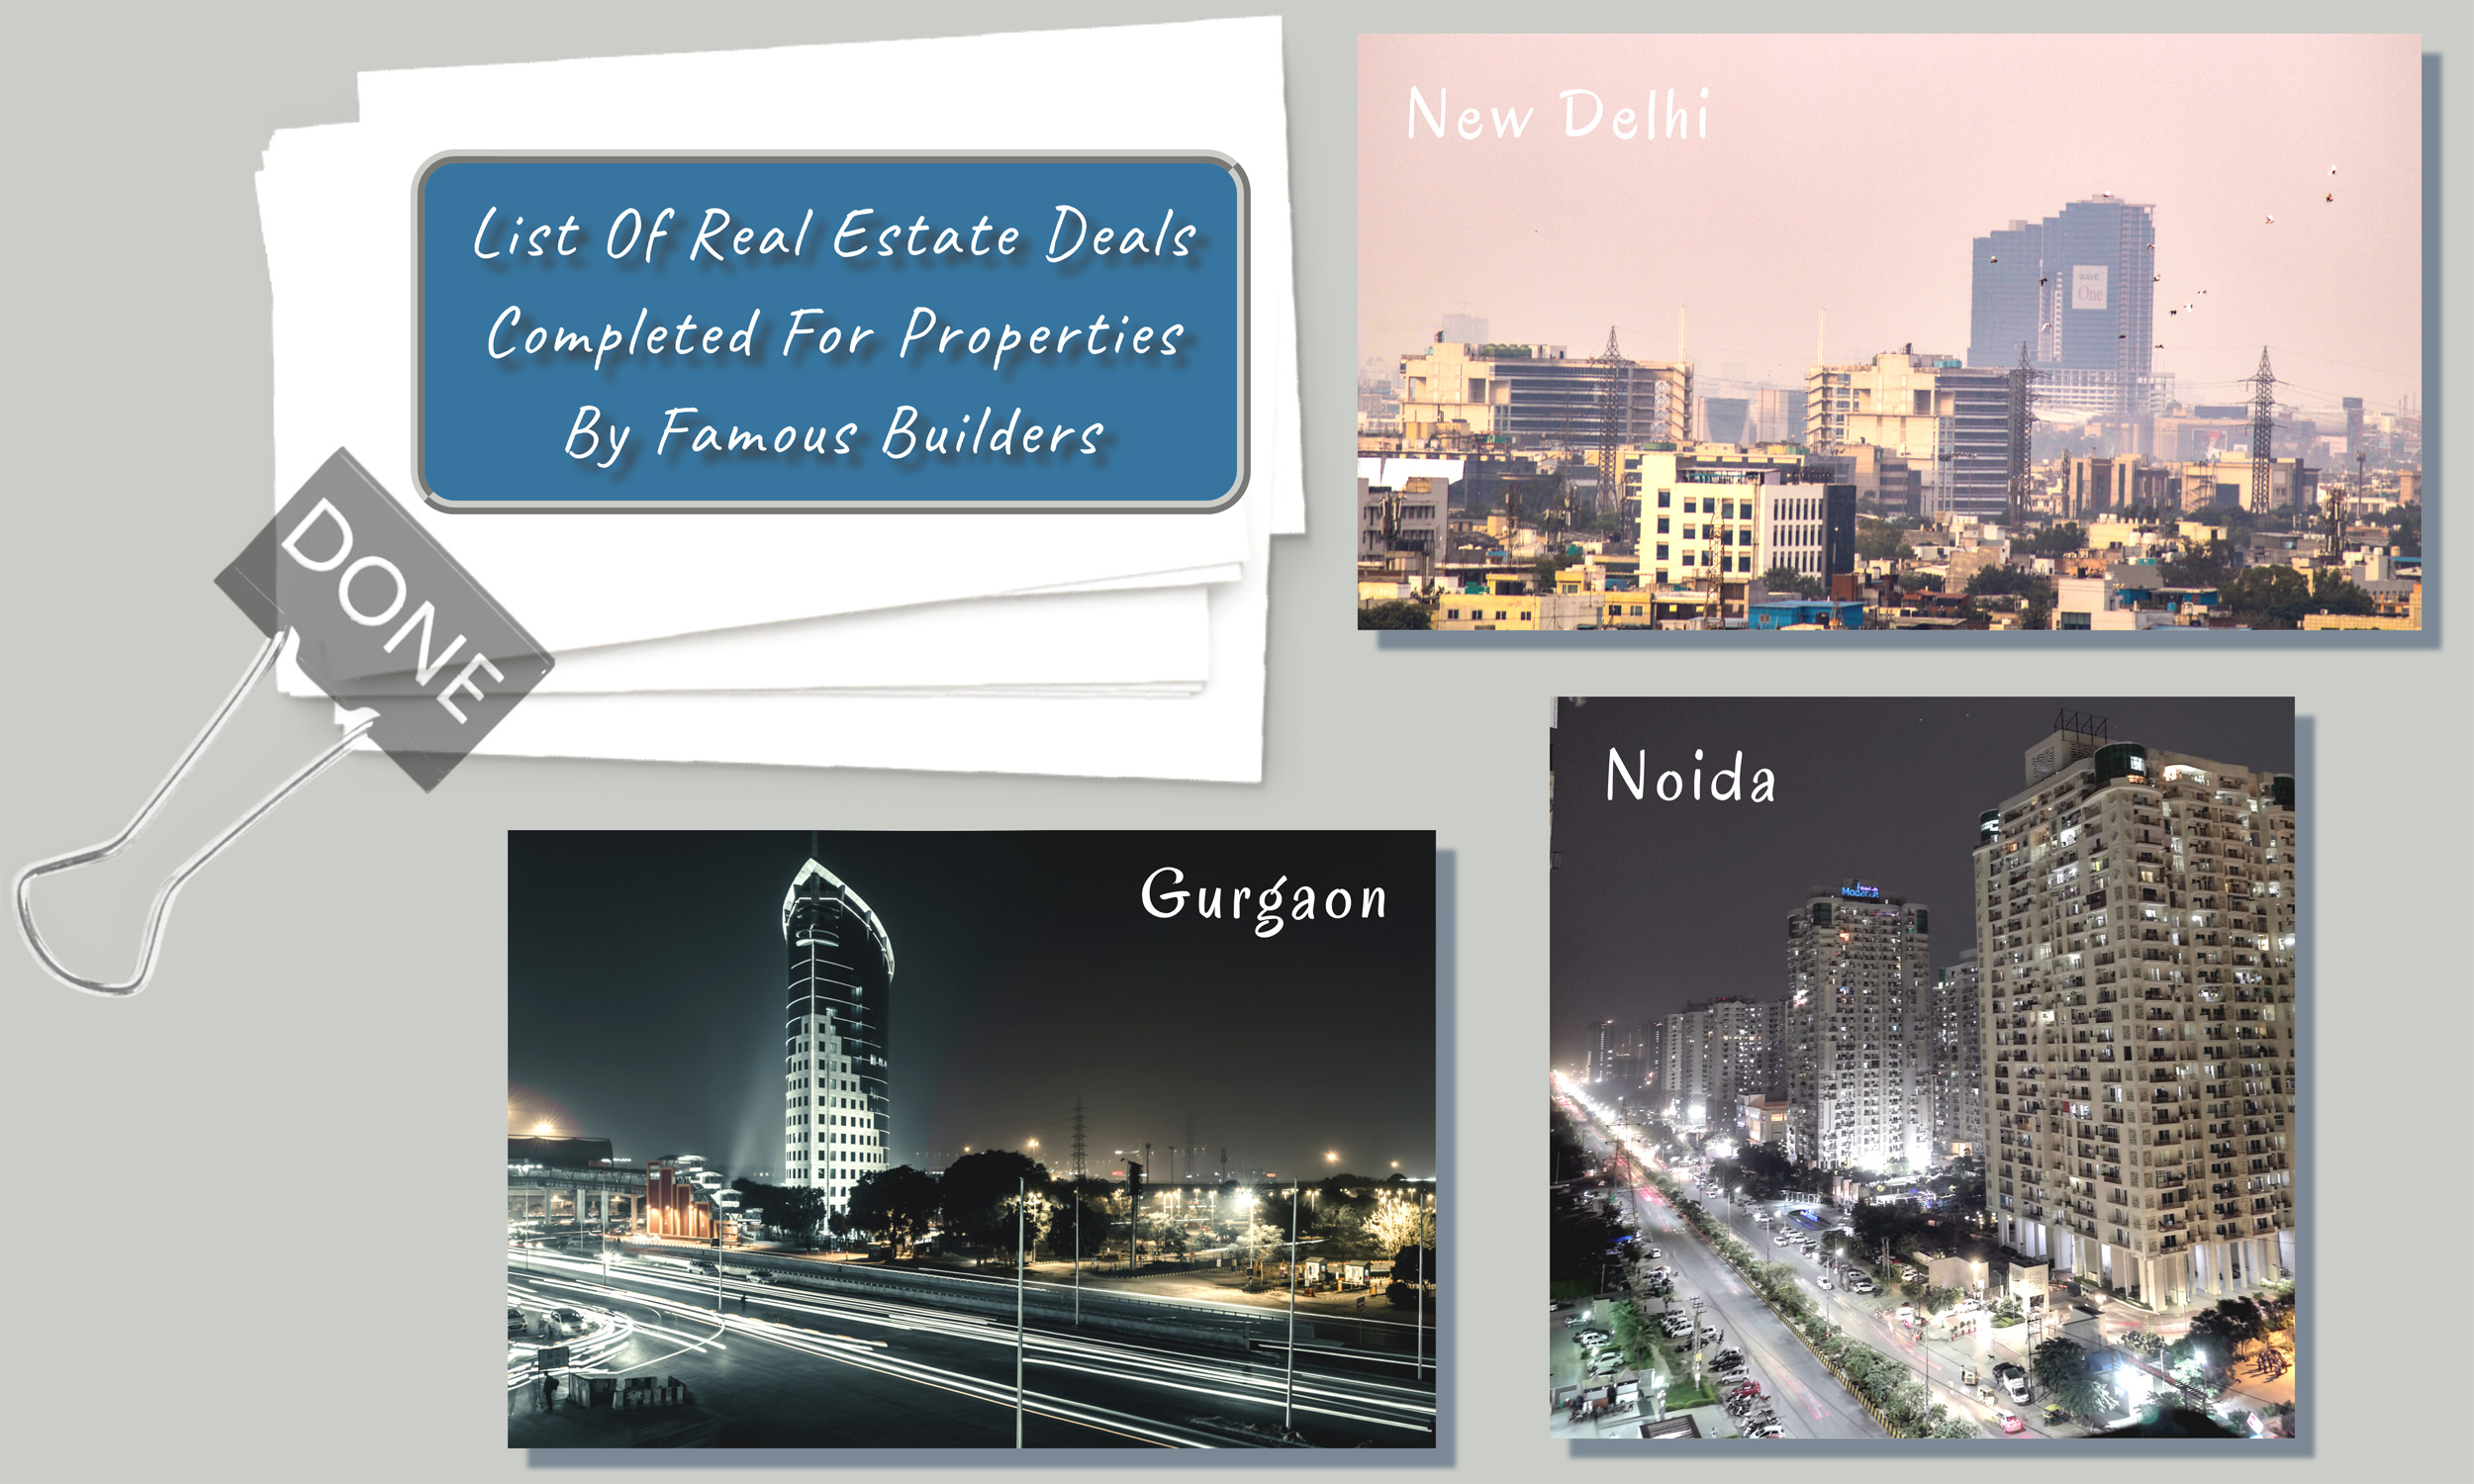 list of deals completed for properties by famous builders in gurgaon and noida and delhi ncr